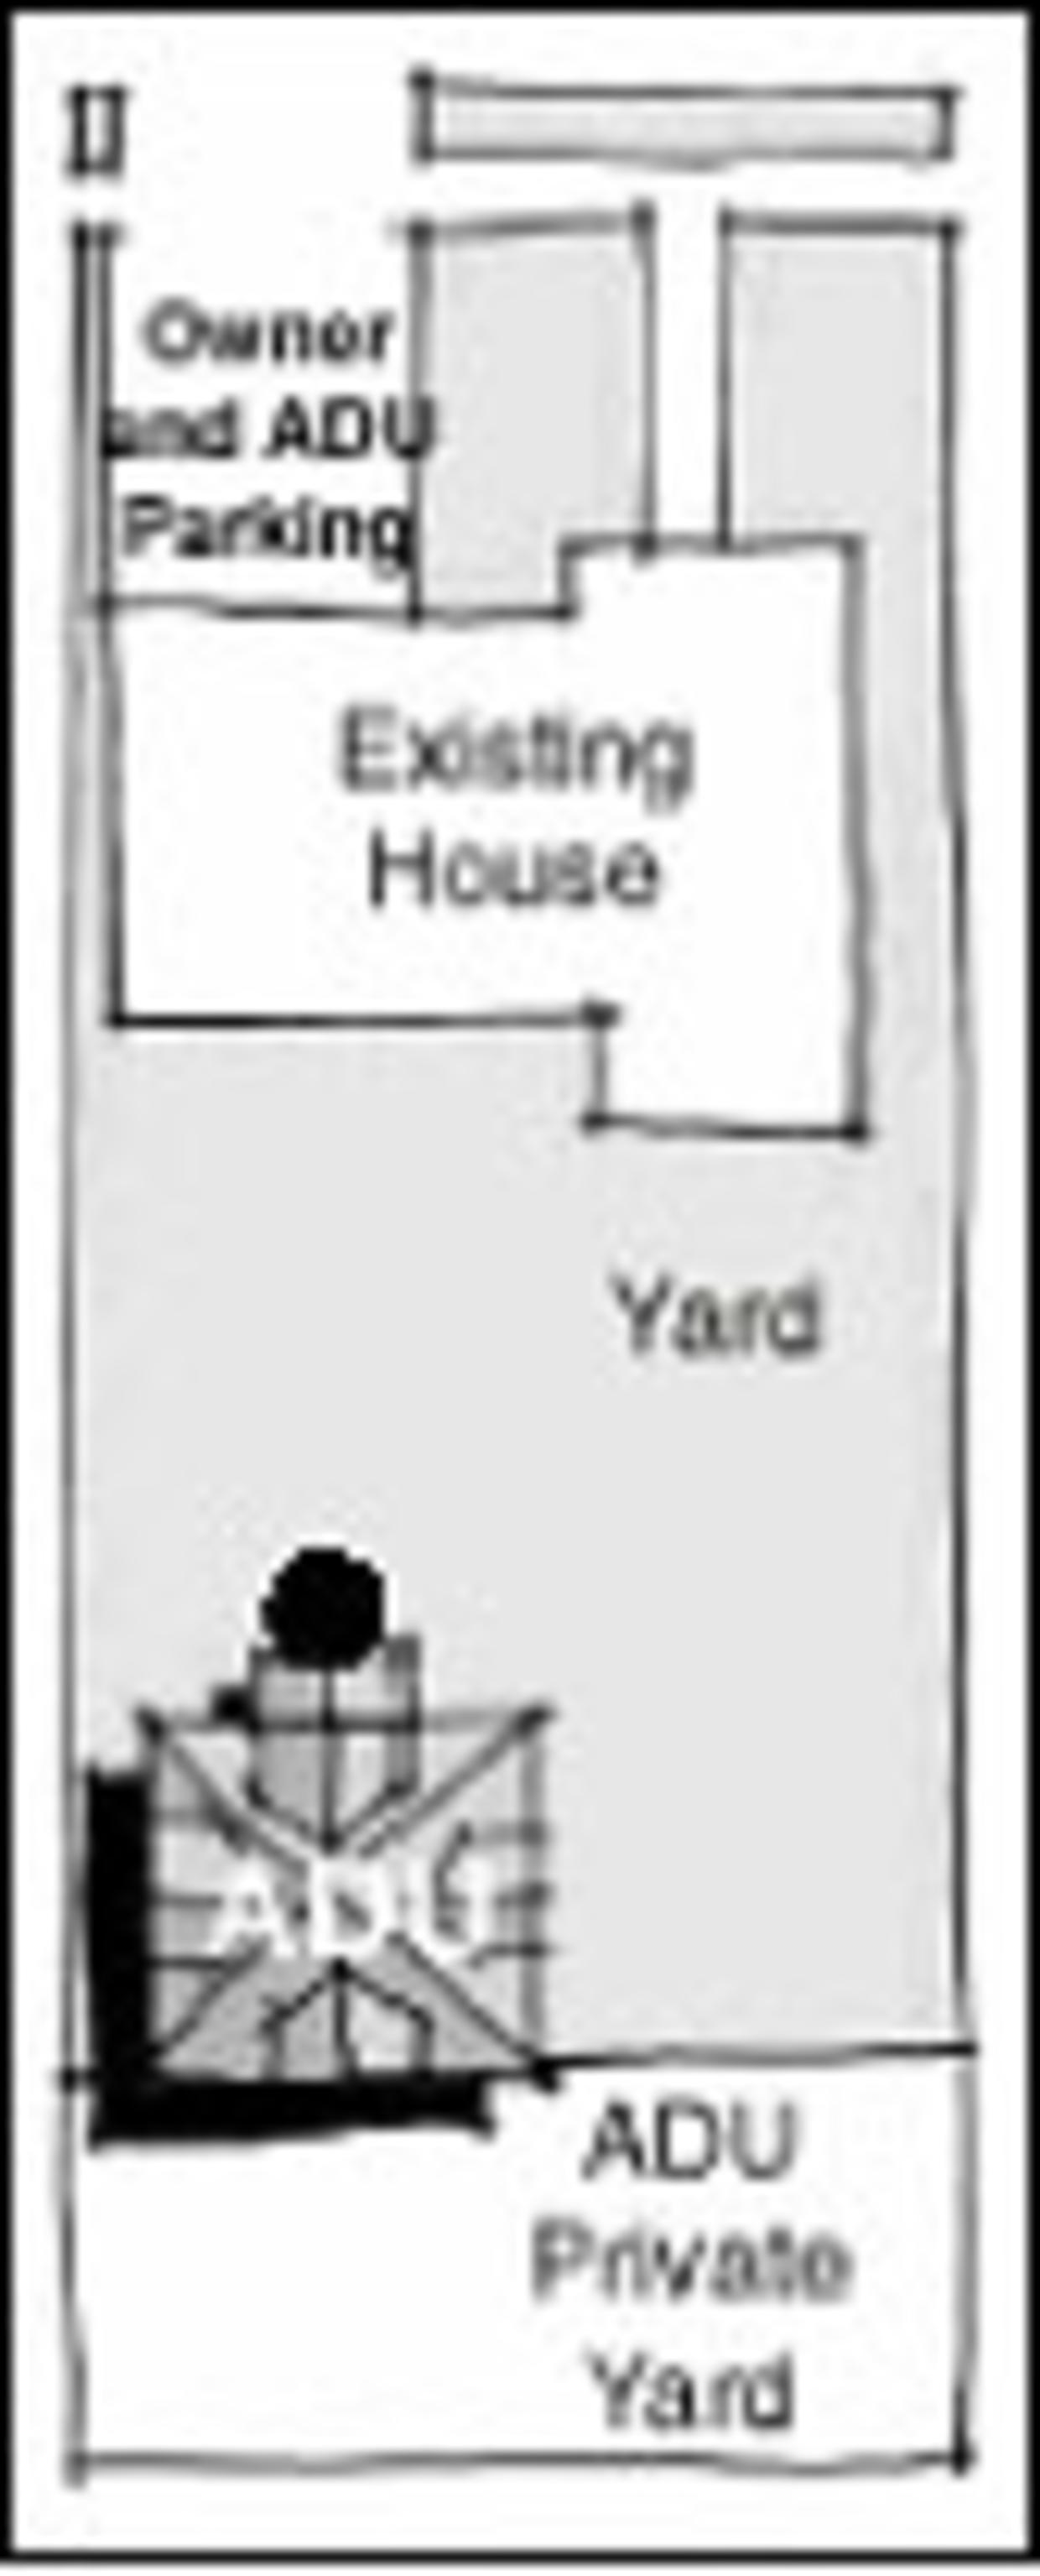 Typical lot layout for detached ADU's